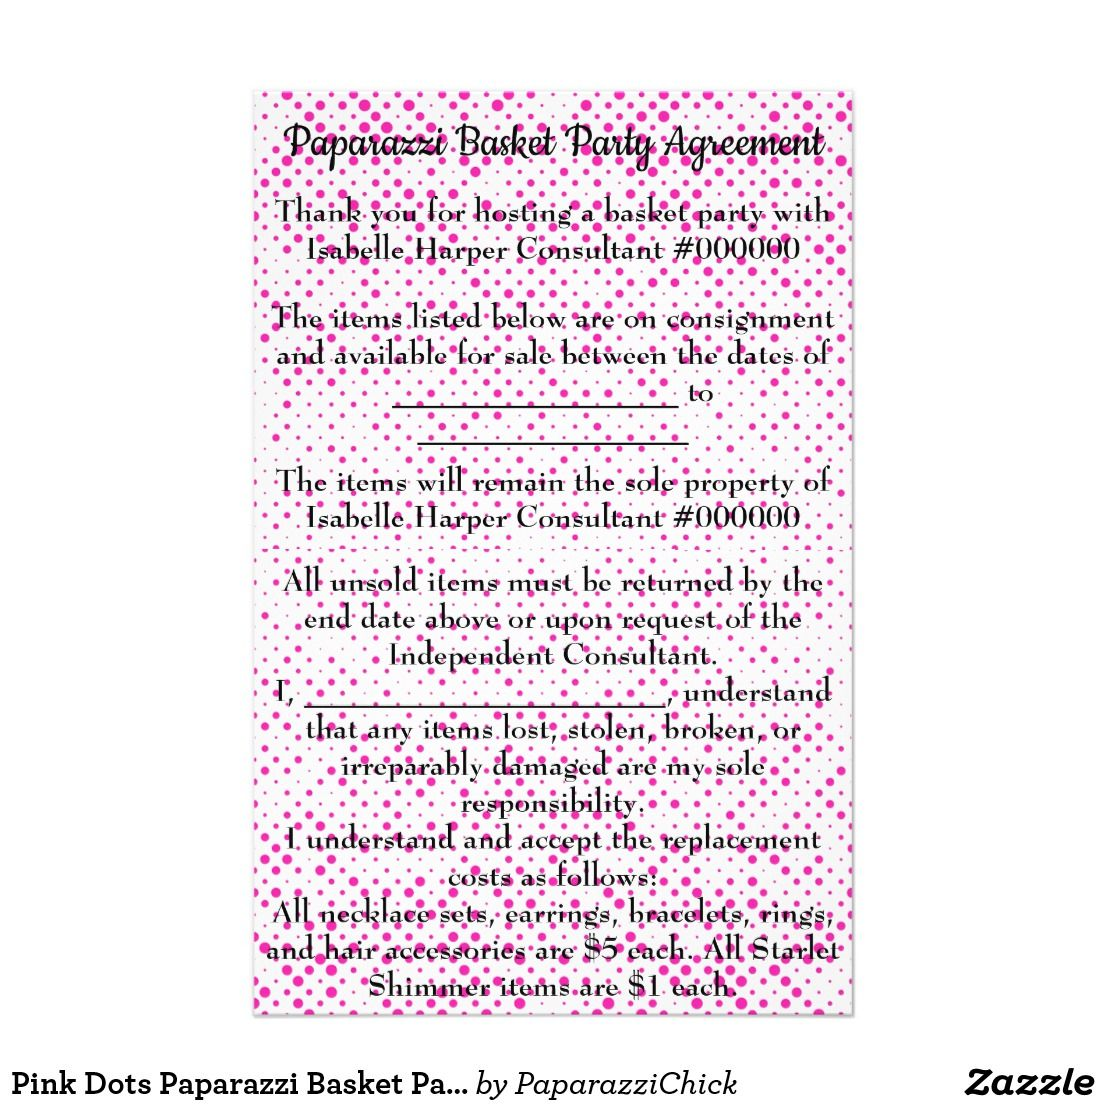 Paparazzi Basket Party Agreement Printable Topsimages